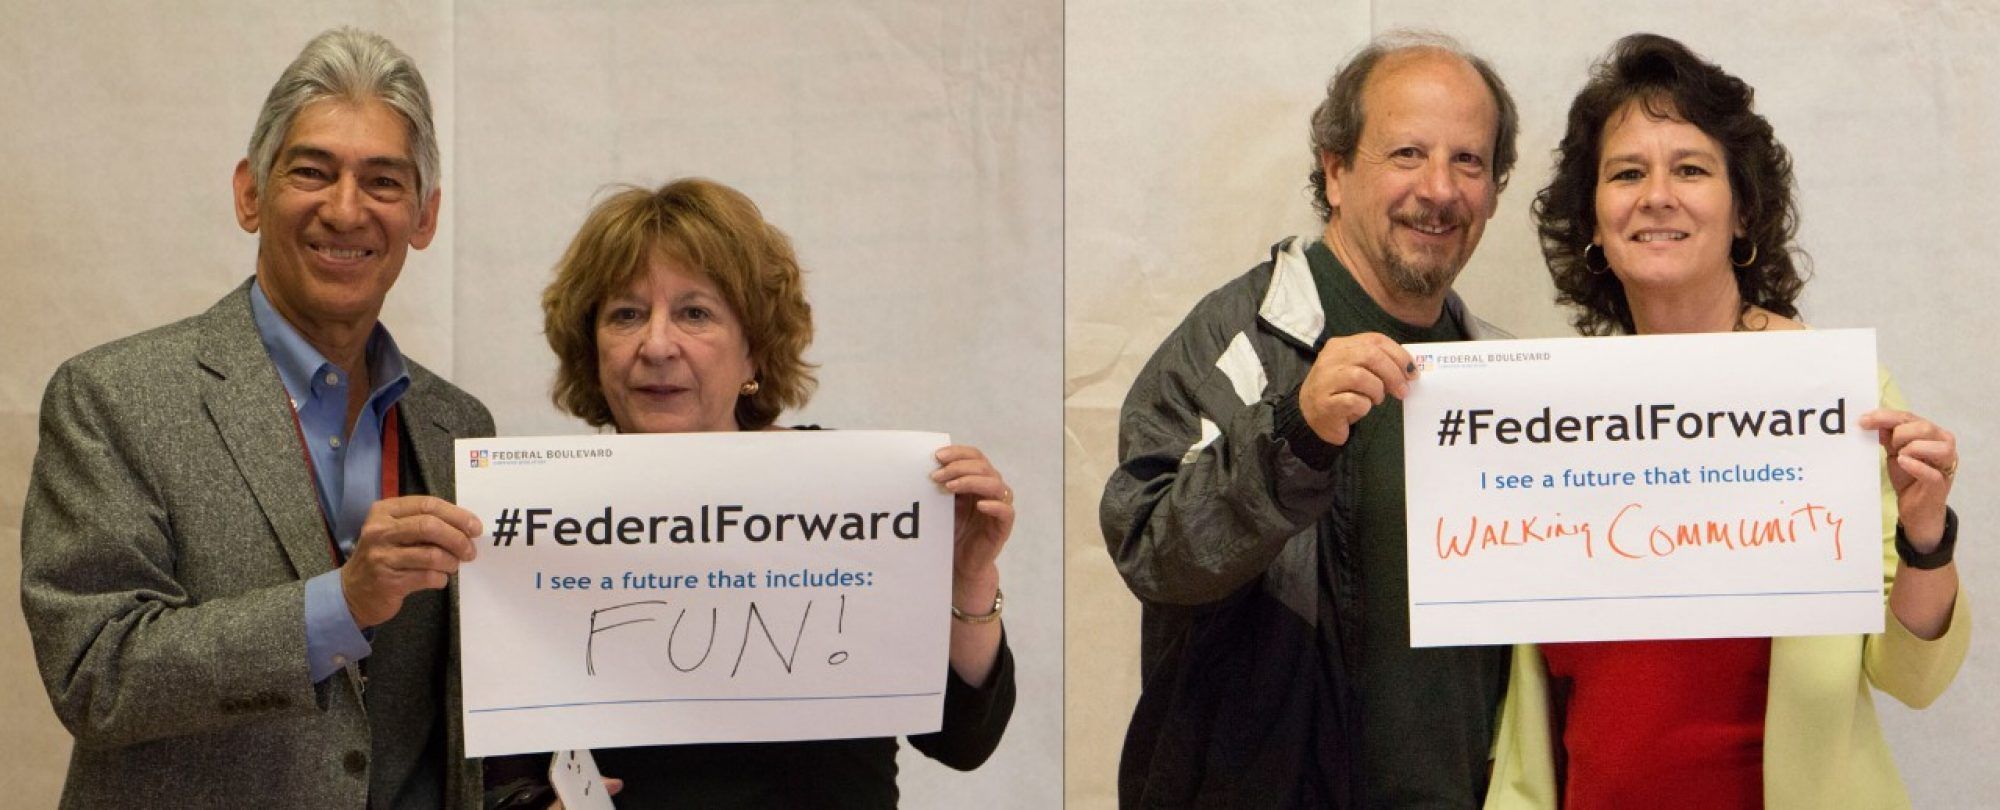 two couples holding #FederalForward signs: